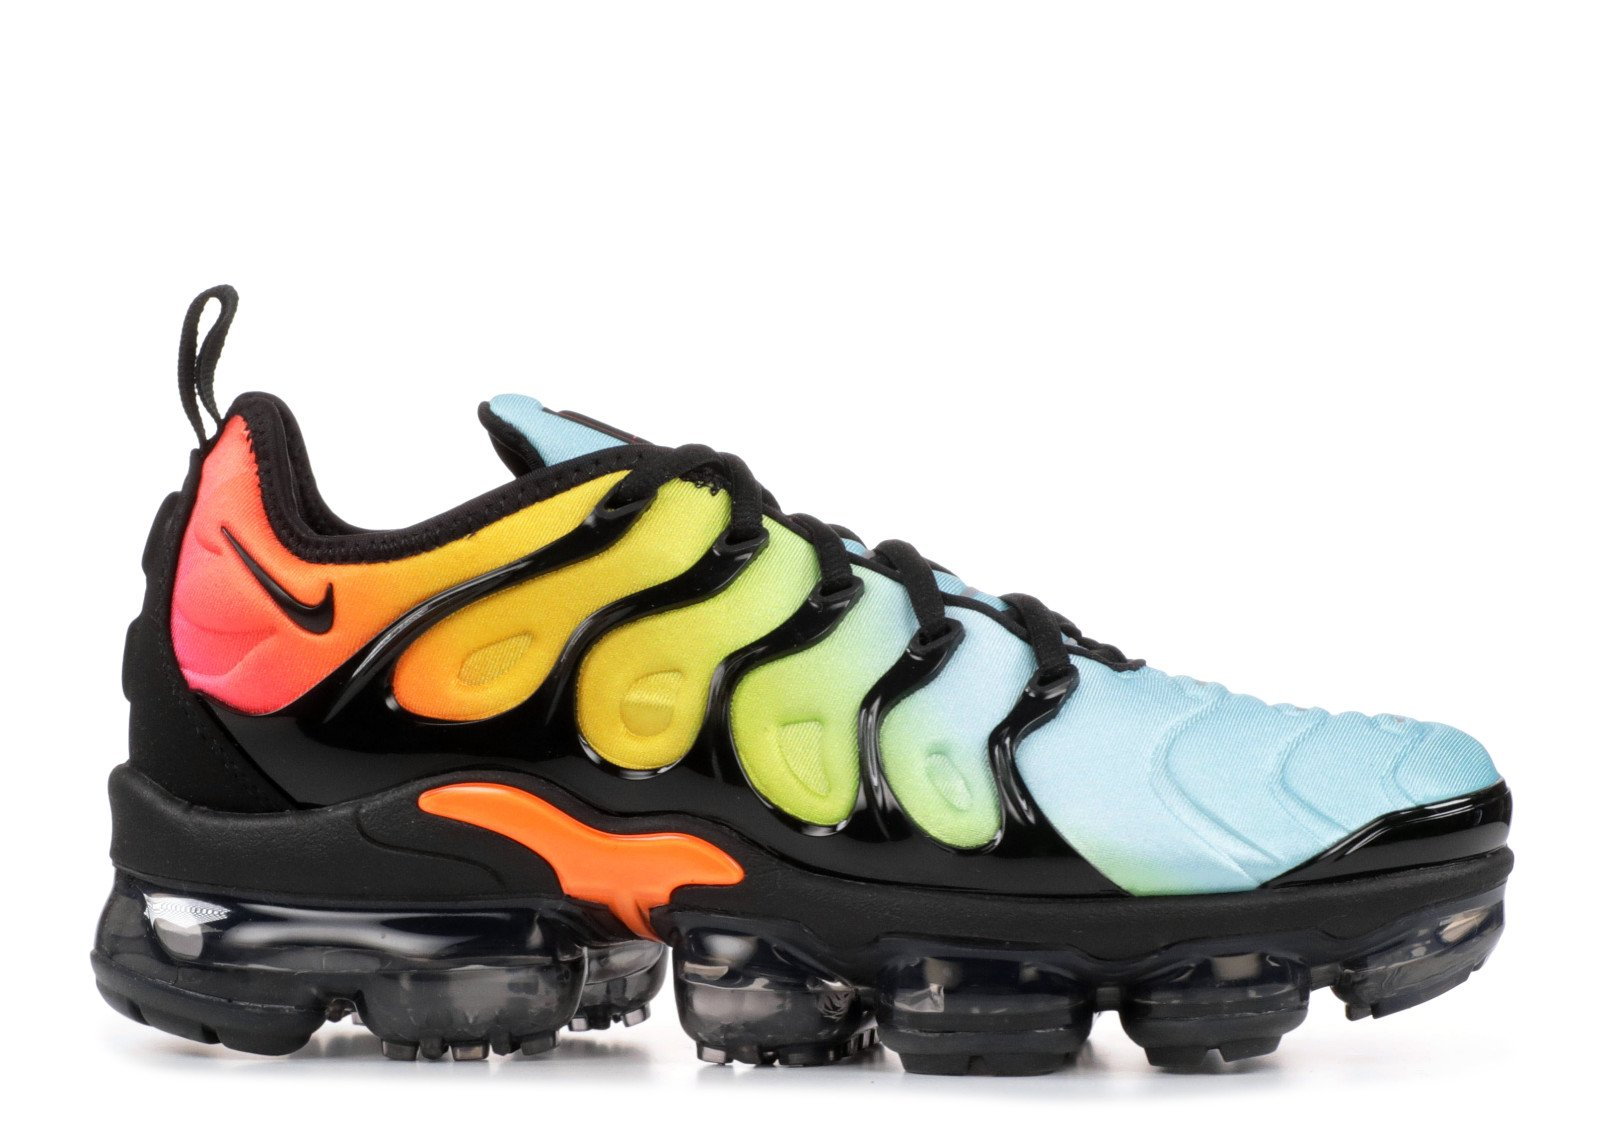 newest 74aad 041f7 Nike Women s W Air Vapormax Plus Running Shoes